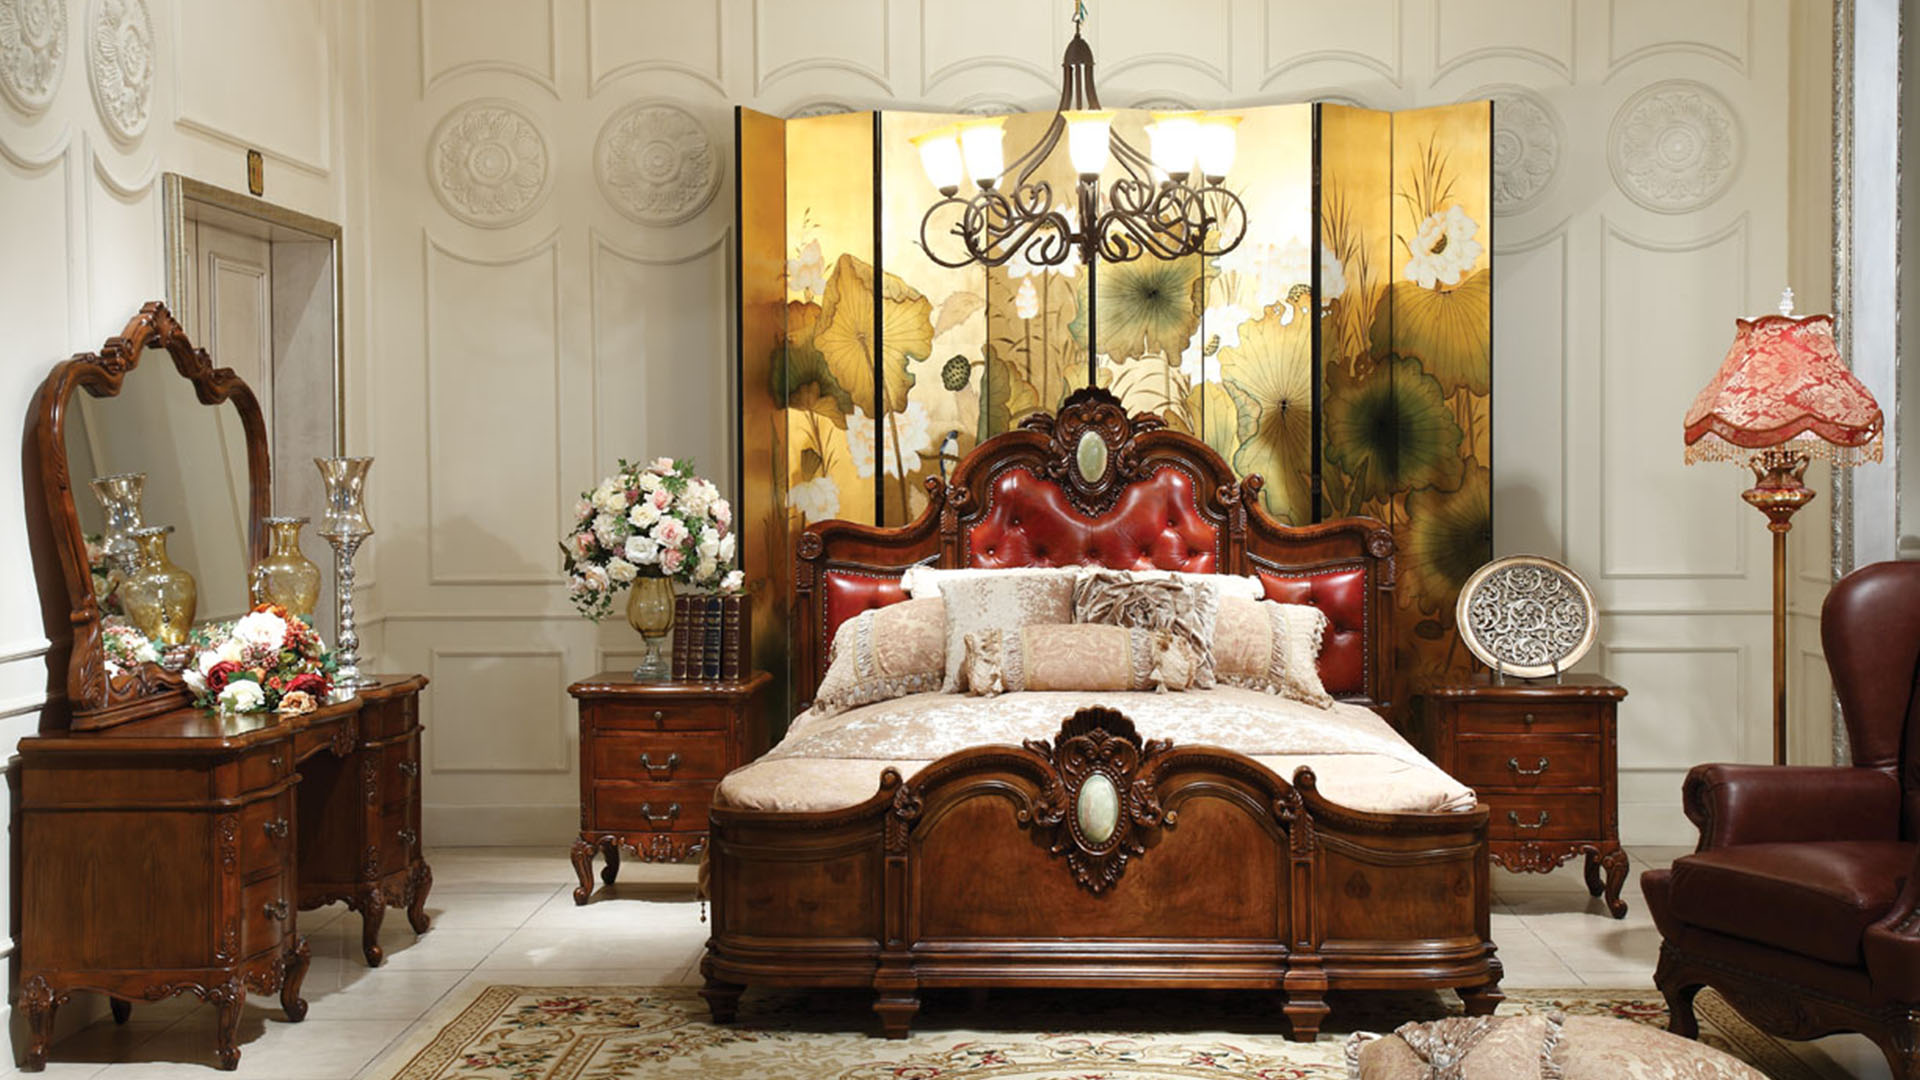 Goodwin furniture Middle east style leather double bed made with solid wood GH14.2